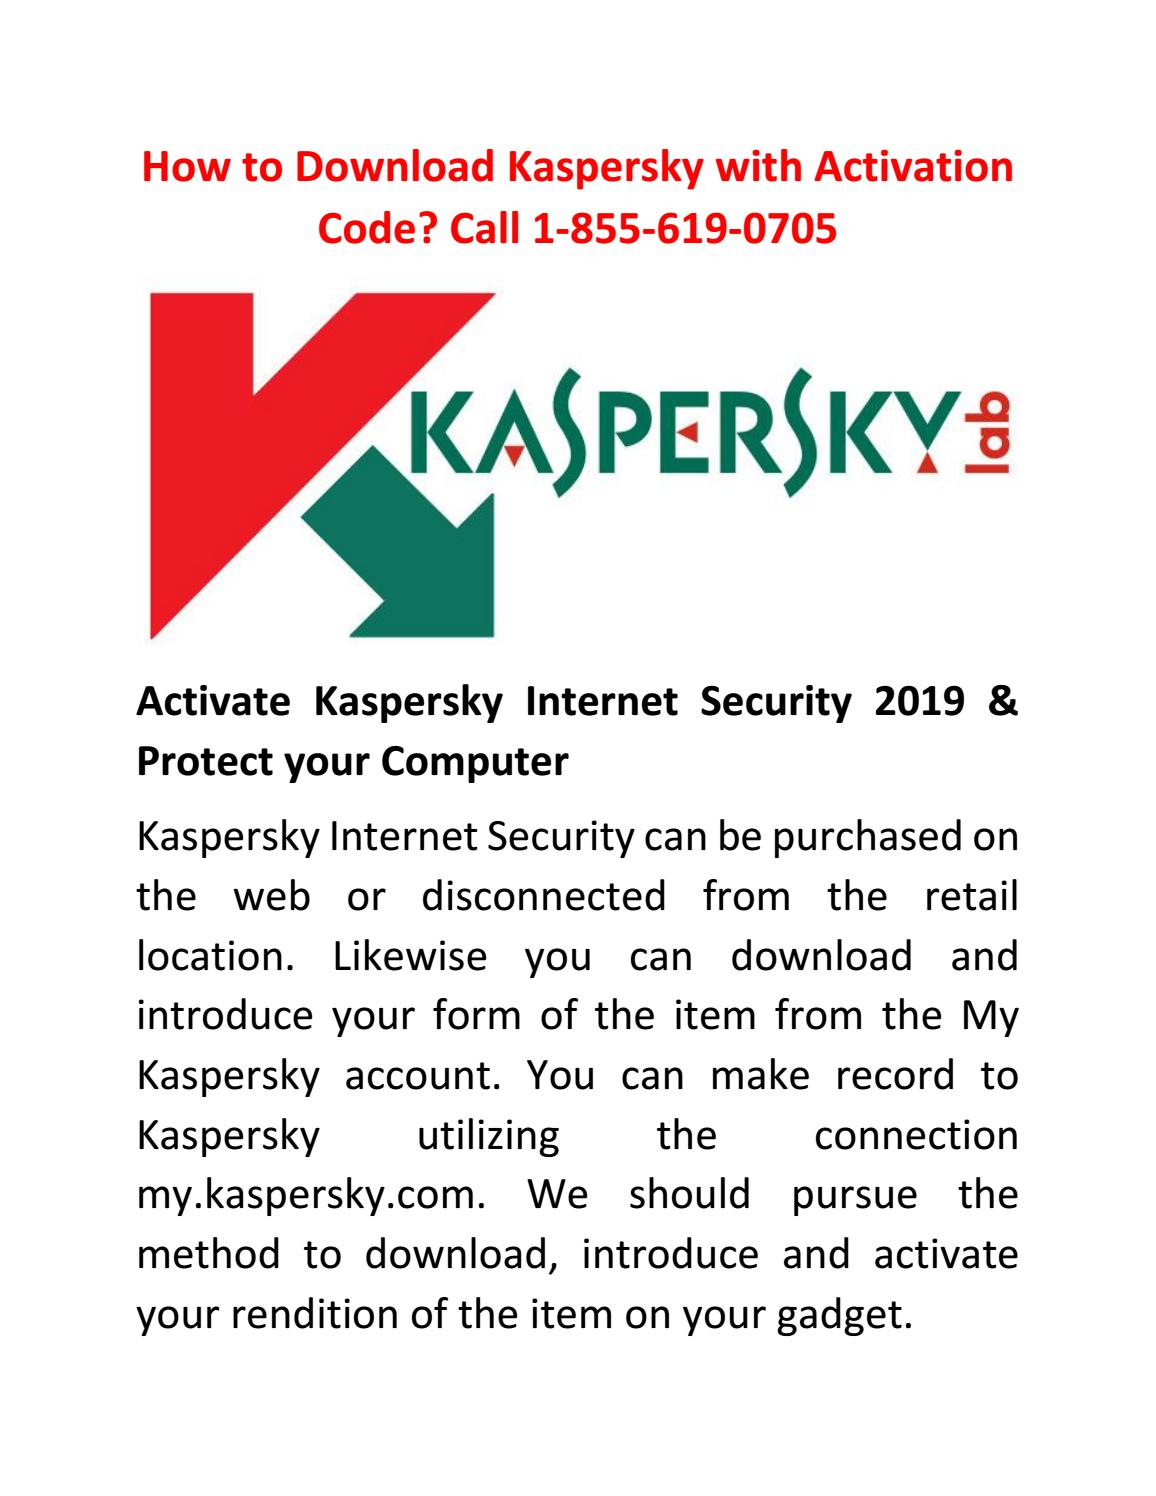 How to Download Kaspersky with Activation Code? Call 1-855